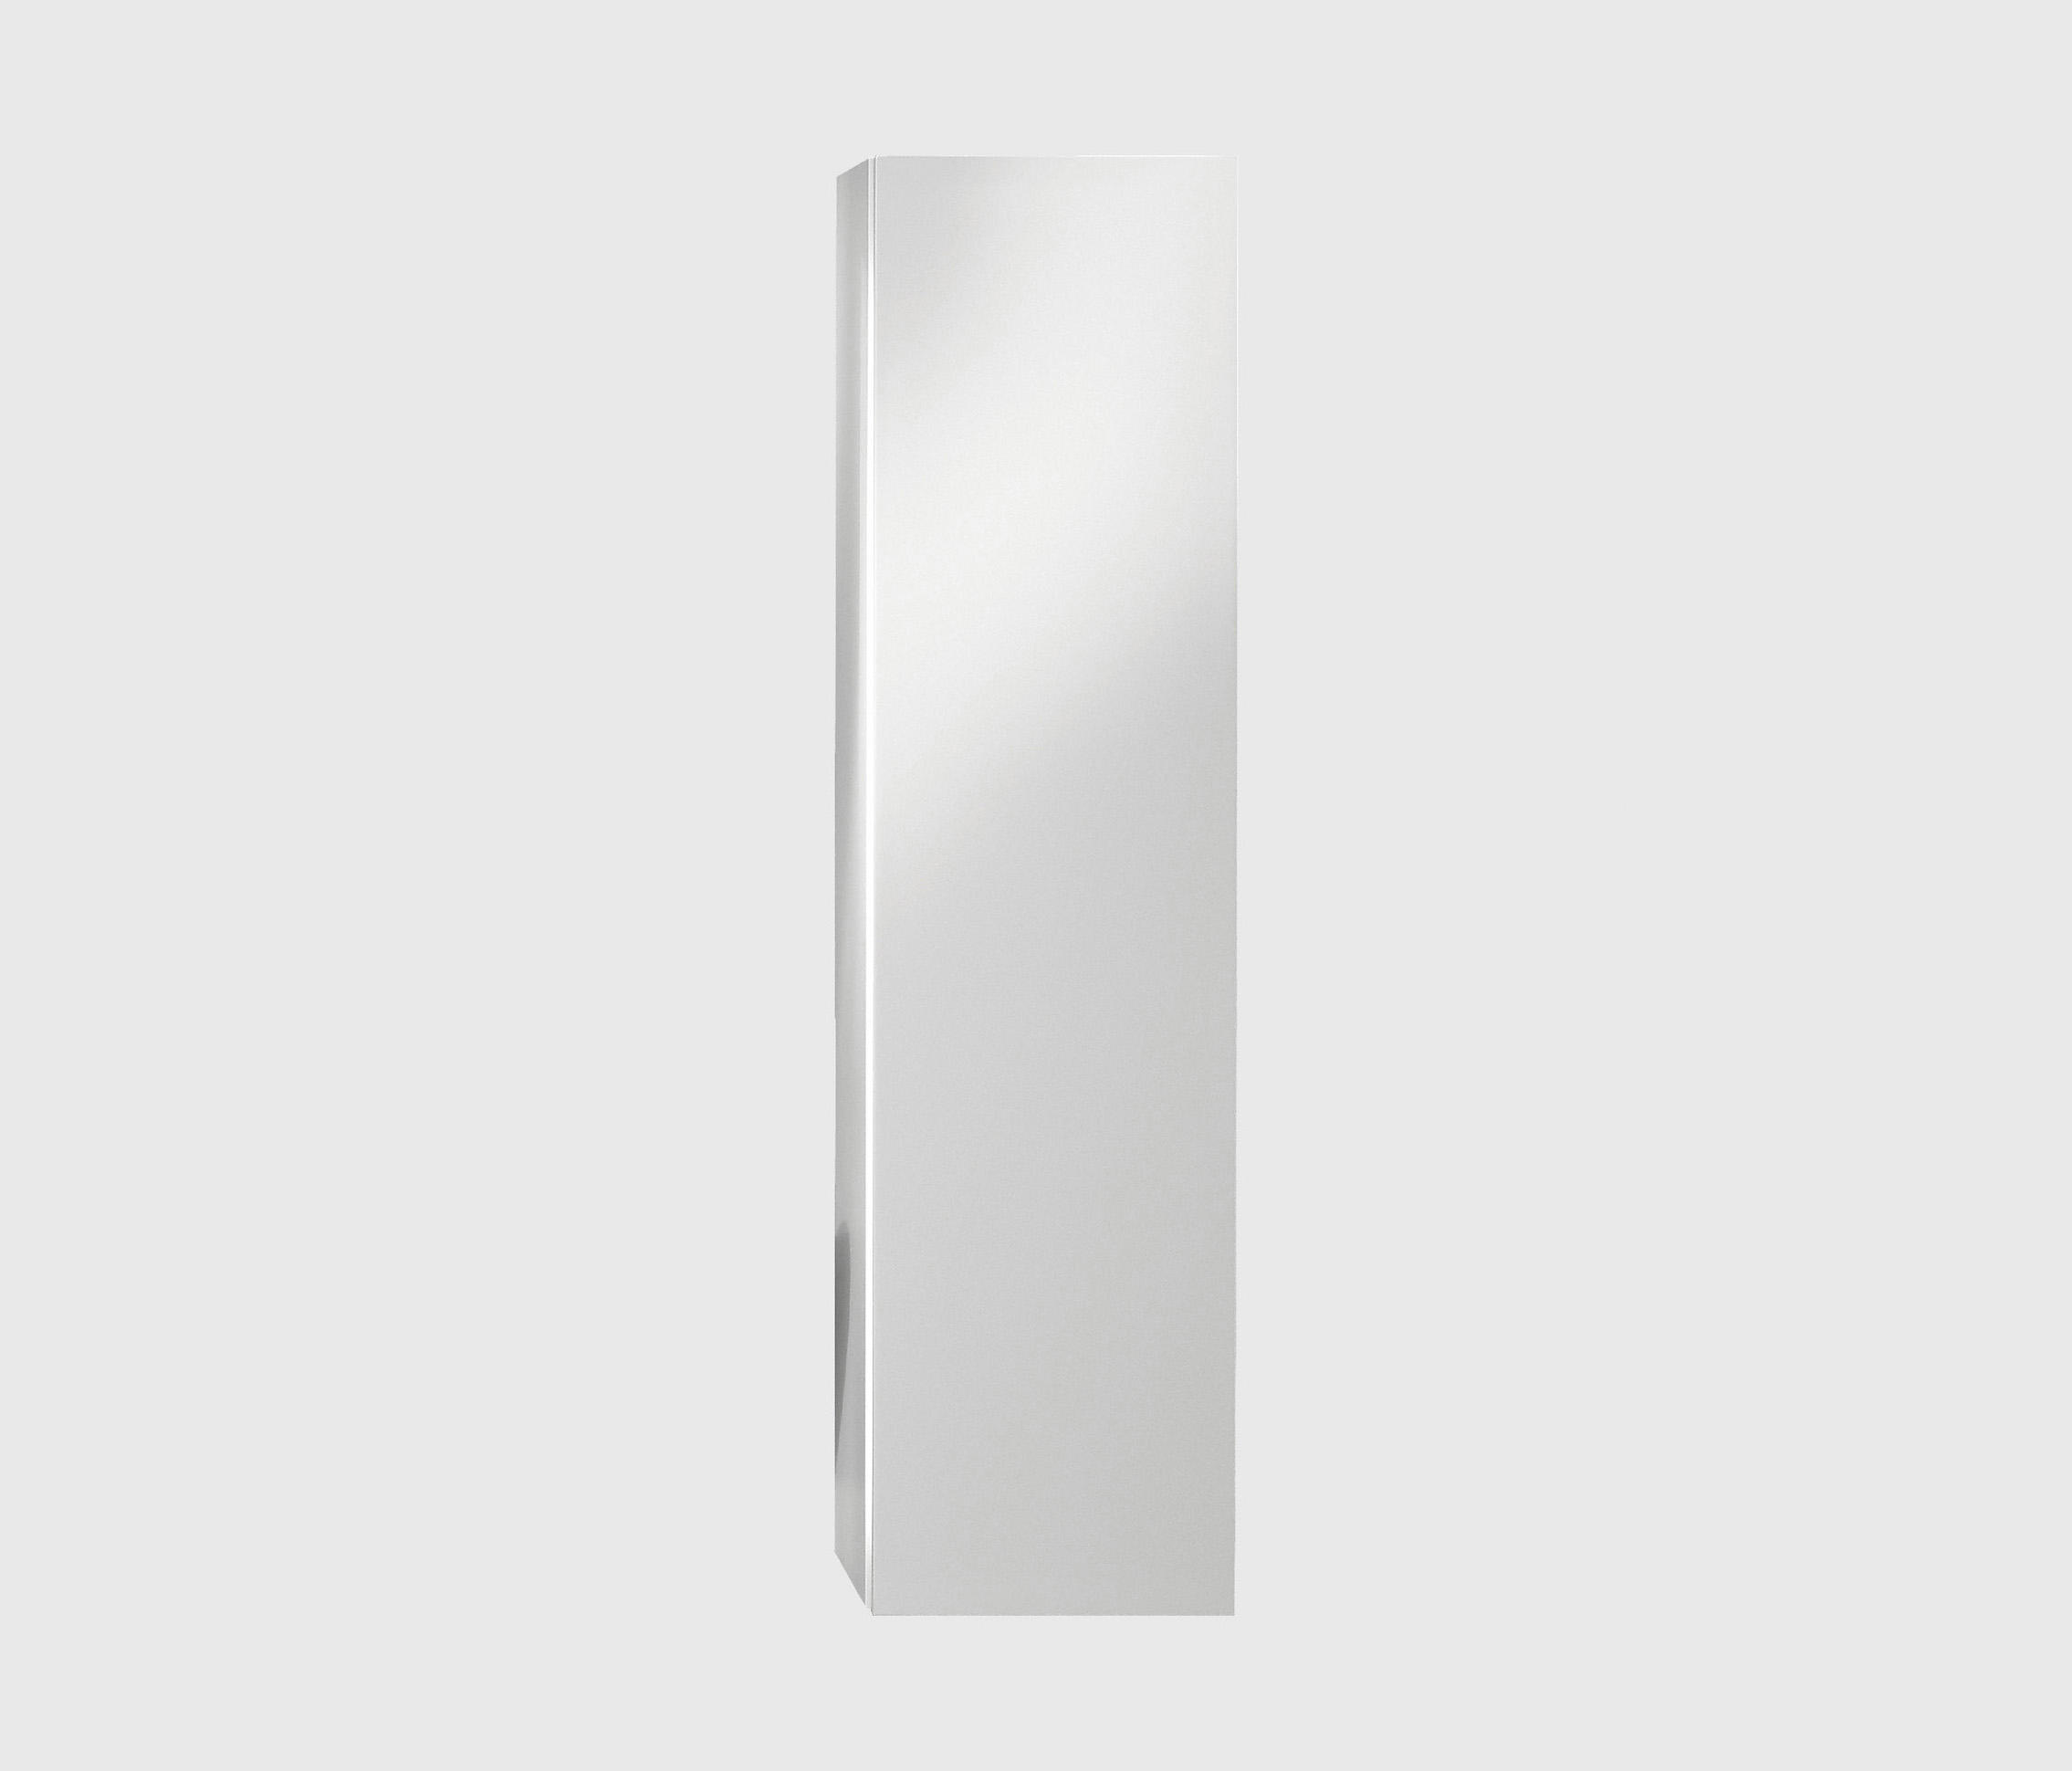 Burgbad Doppelwaschtisch 160 Pli Tall Unit Wall Cabinets From Burgbad Architonic